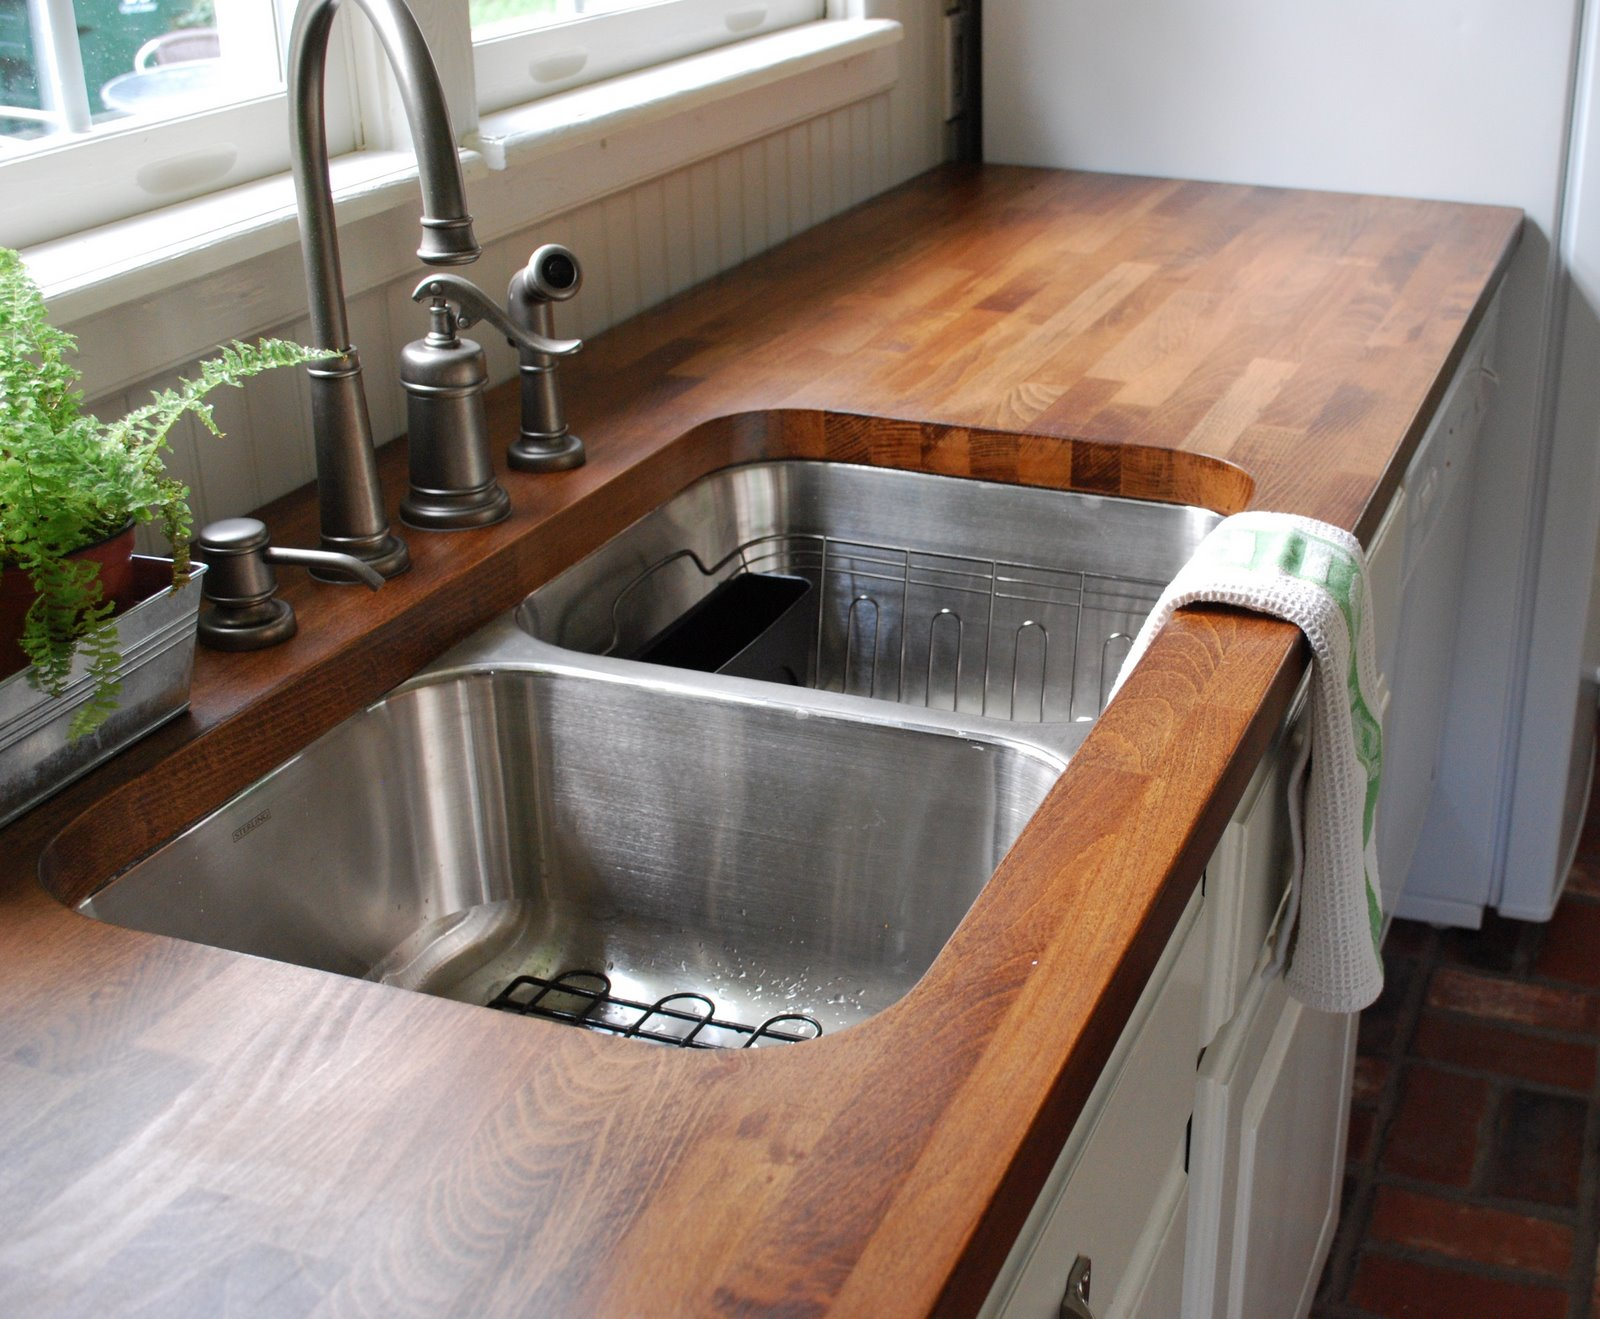 Wooden-countertop-feels-cozy-homey-and-very-welcoming